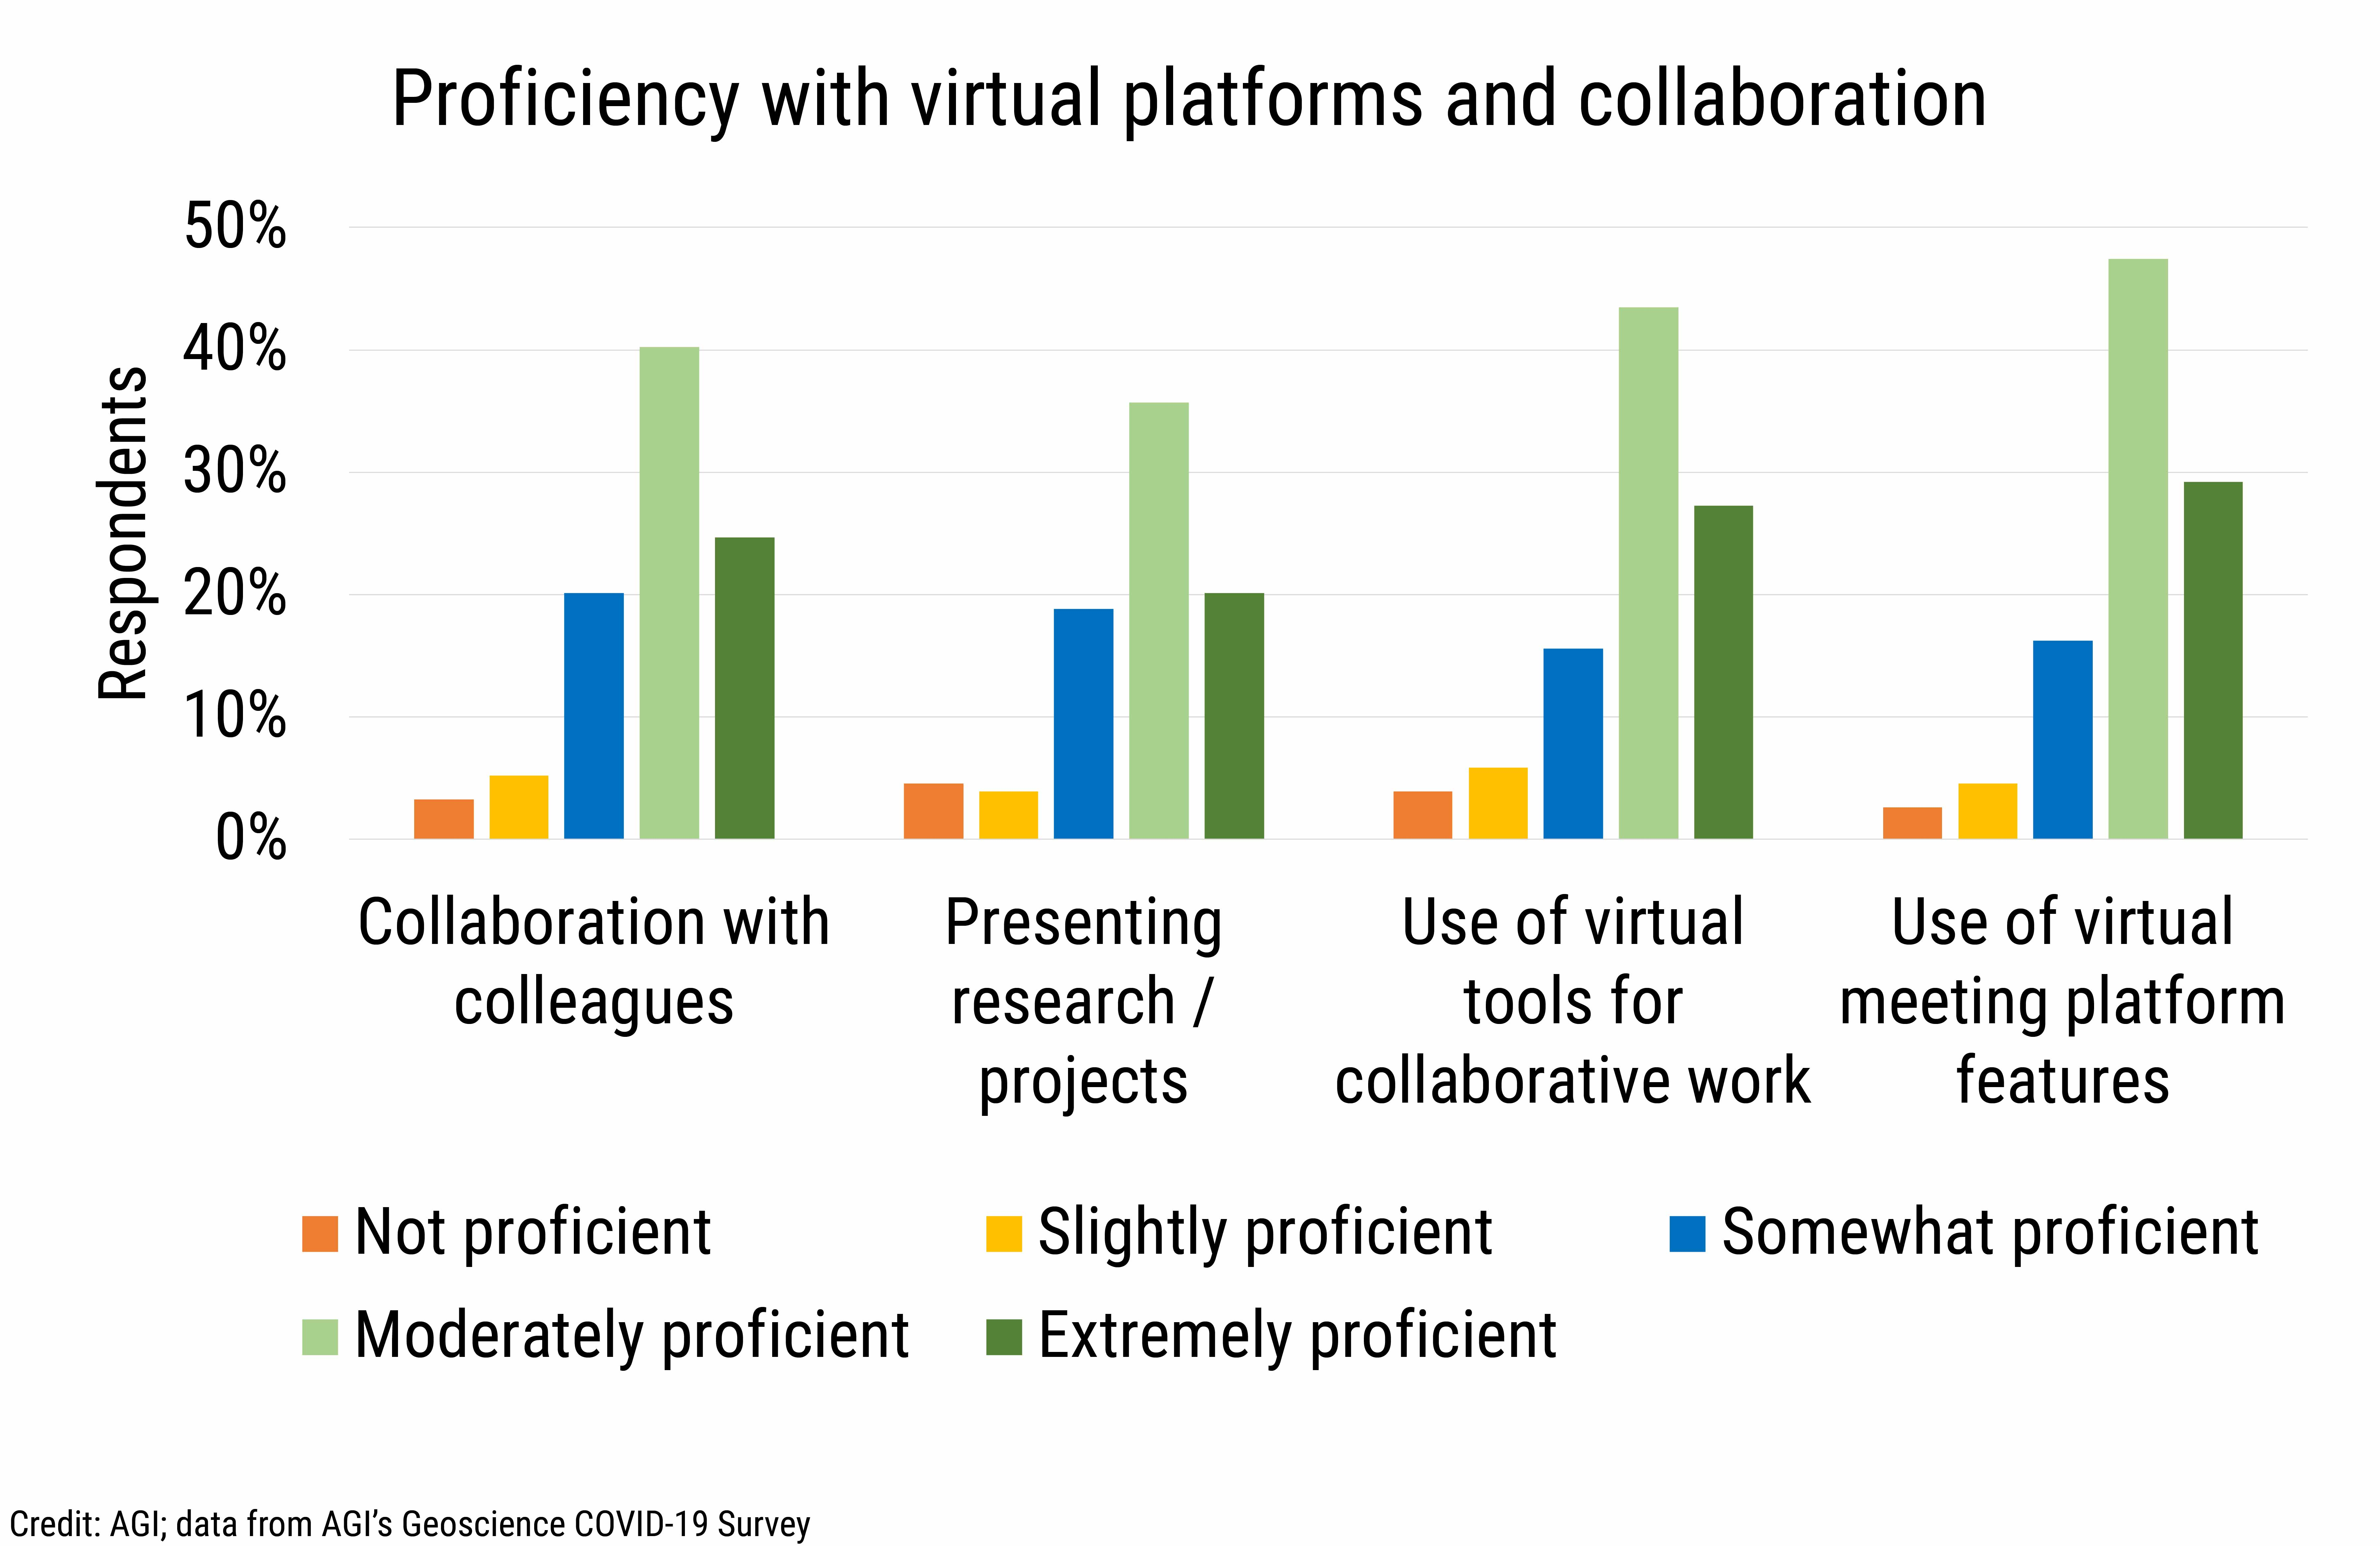 DB_2021-007 chart 05: Proficiency with virtual platforms and collaboration (Credit: AGI; data from AGI's Geoscience COVID-19 Survey)